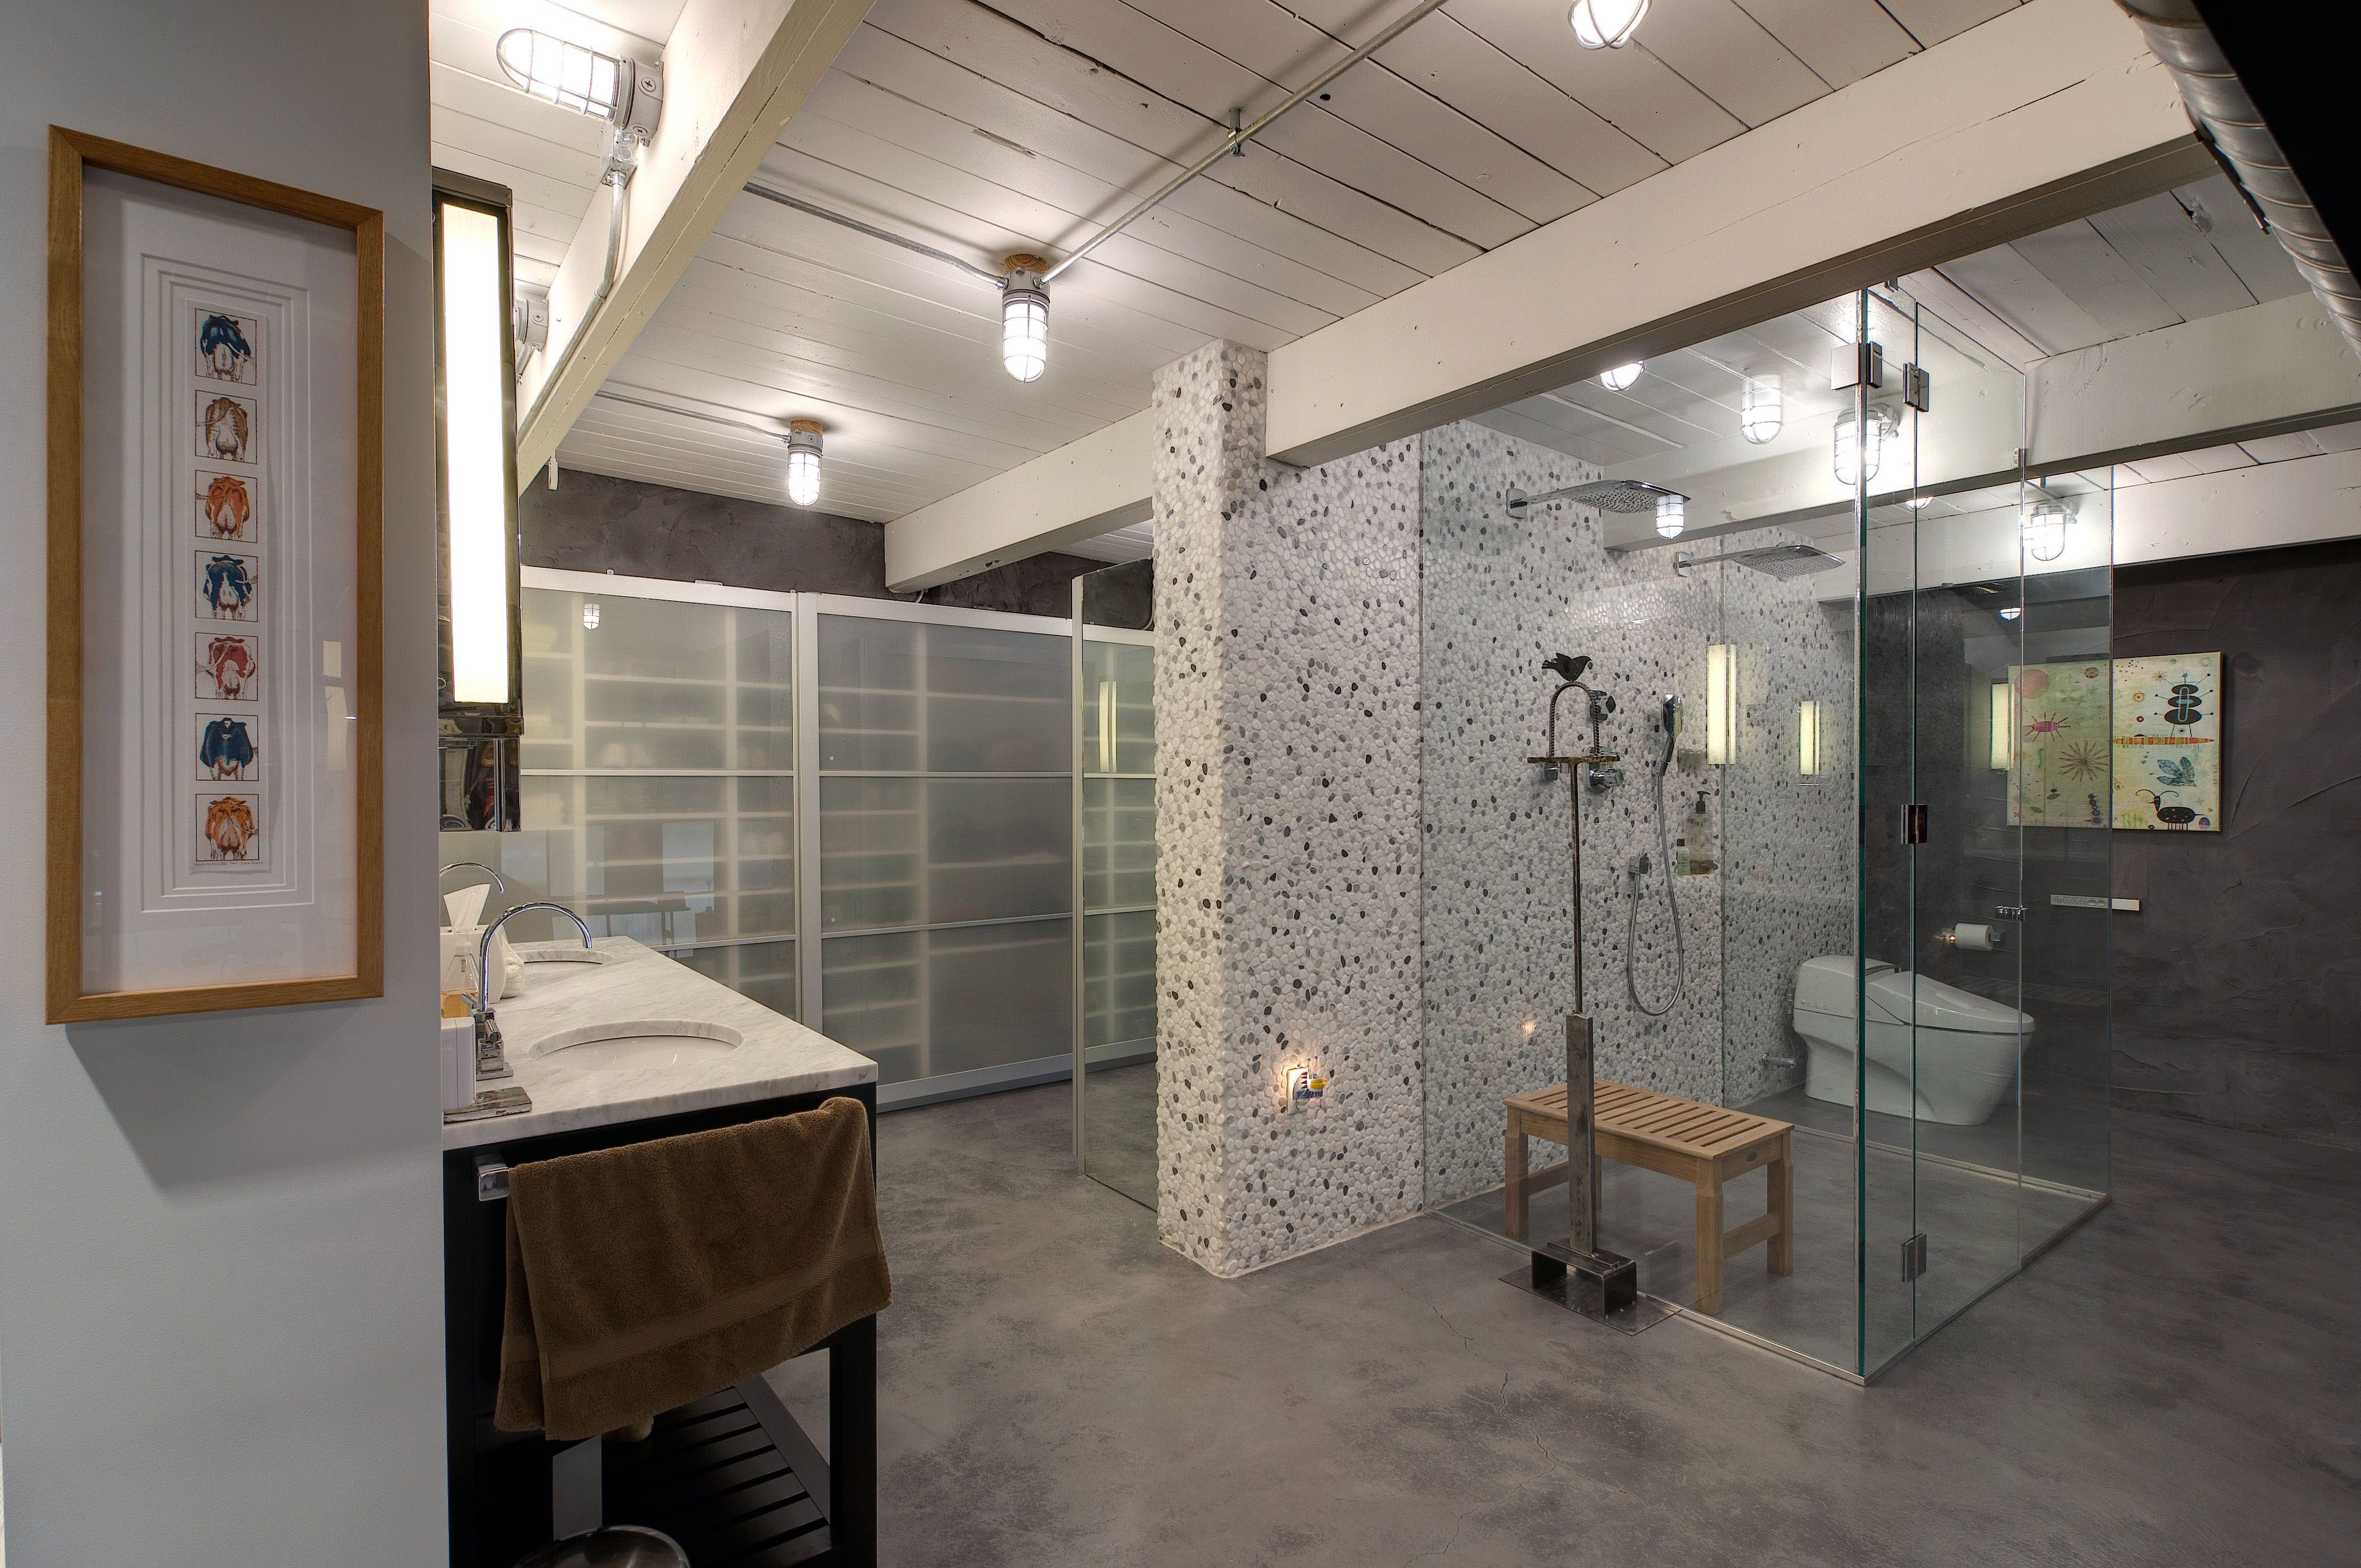 Design Tips To Create A Small Restroom Much Better